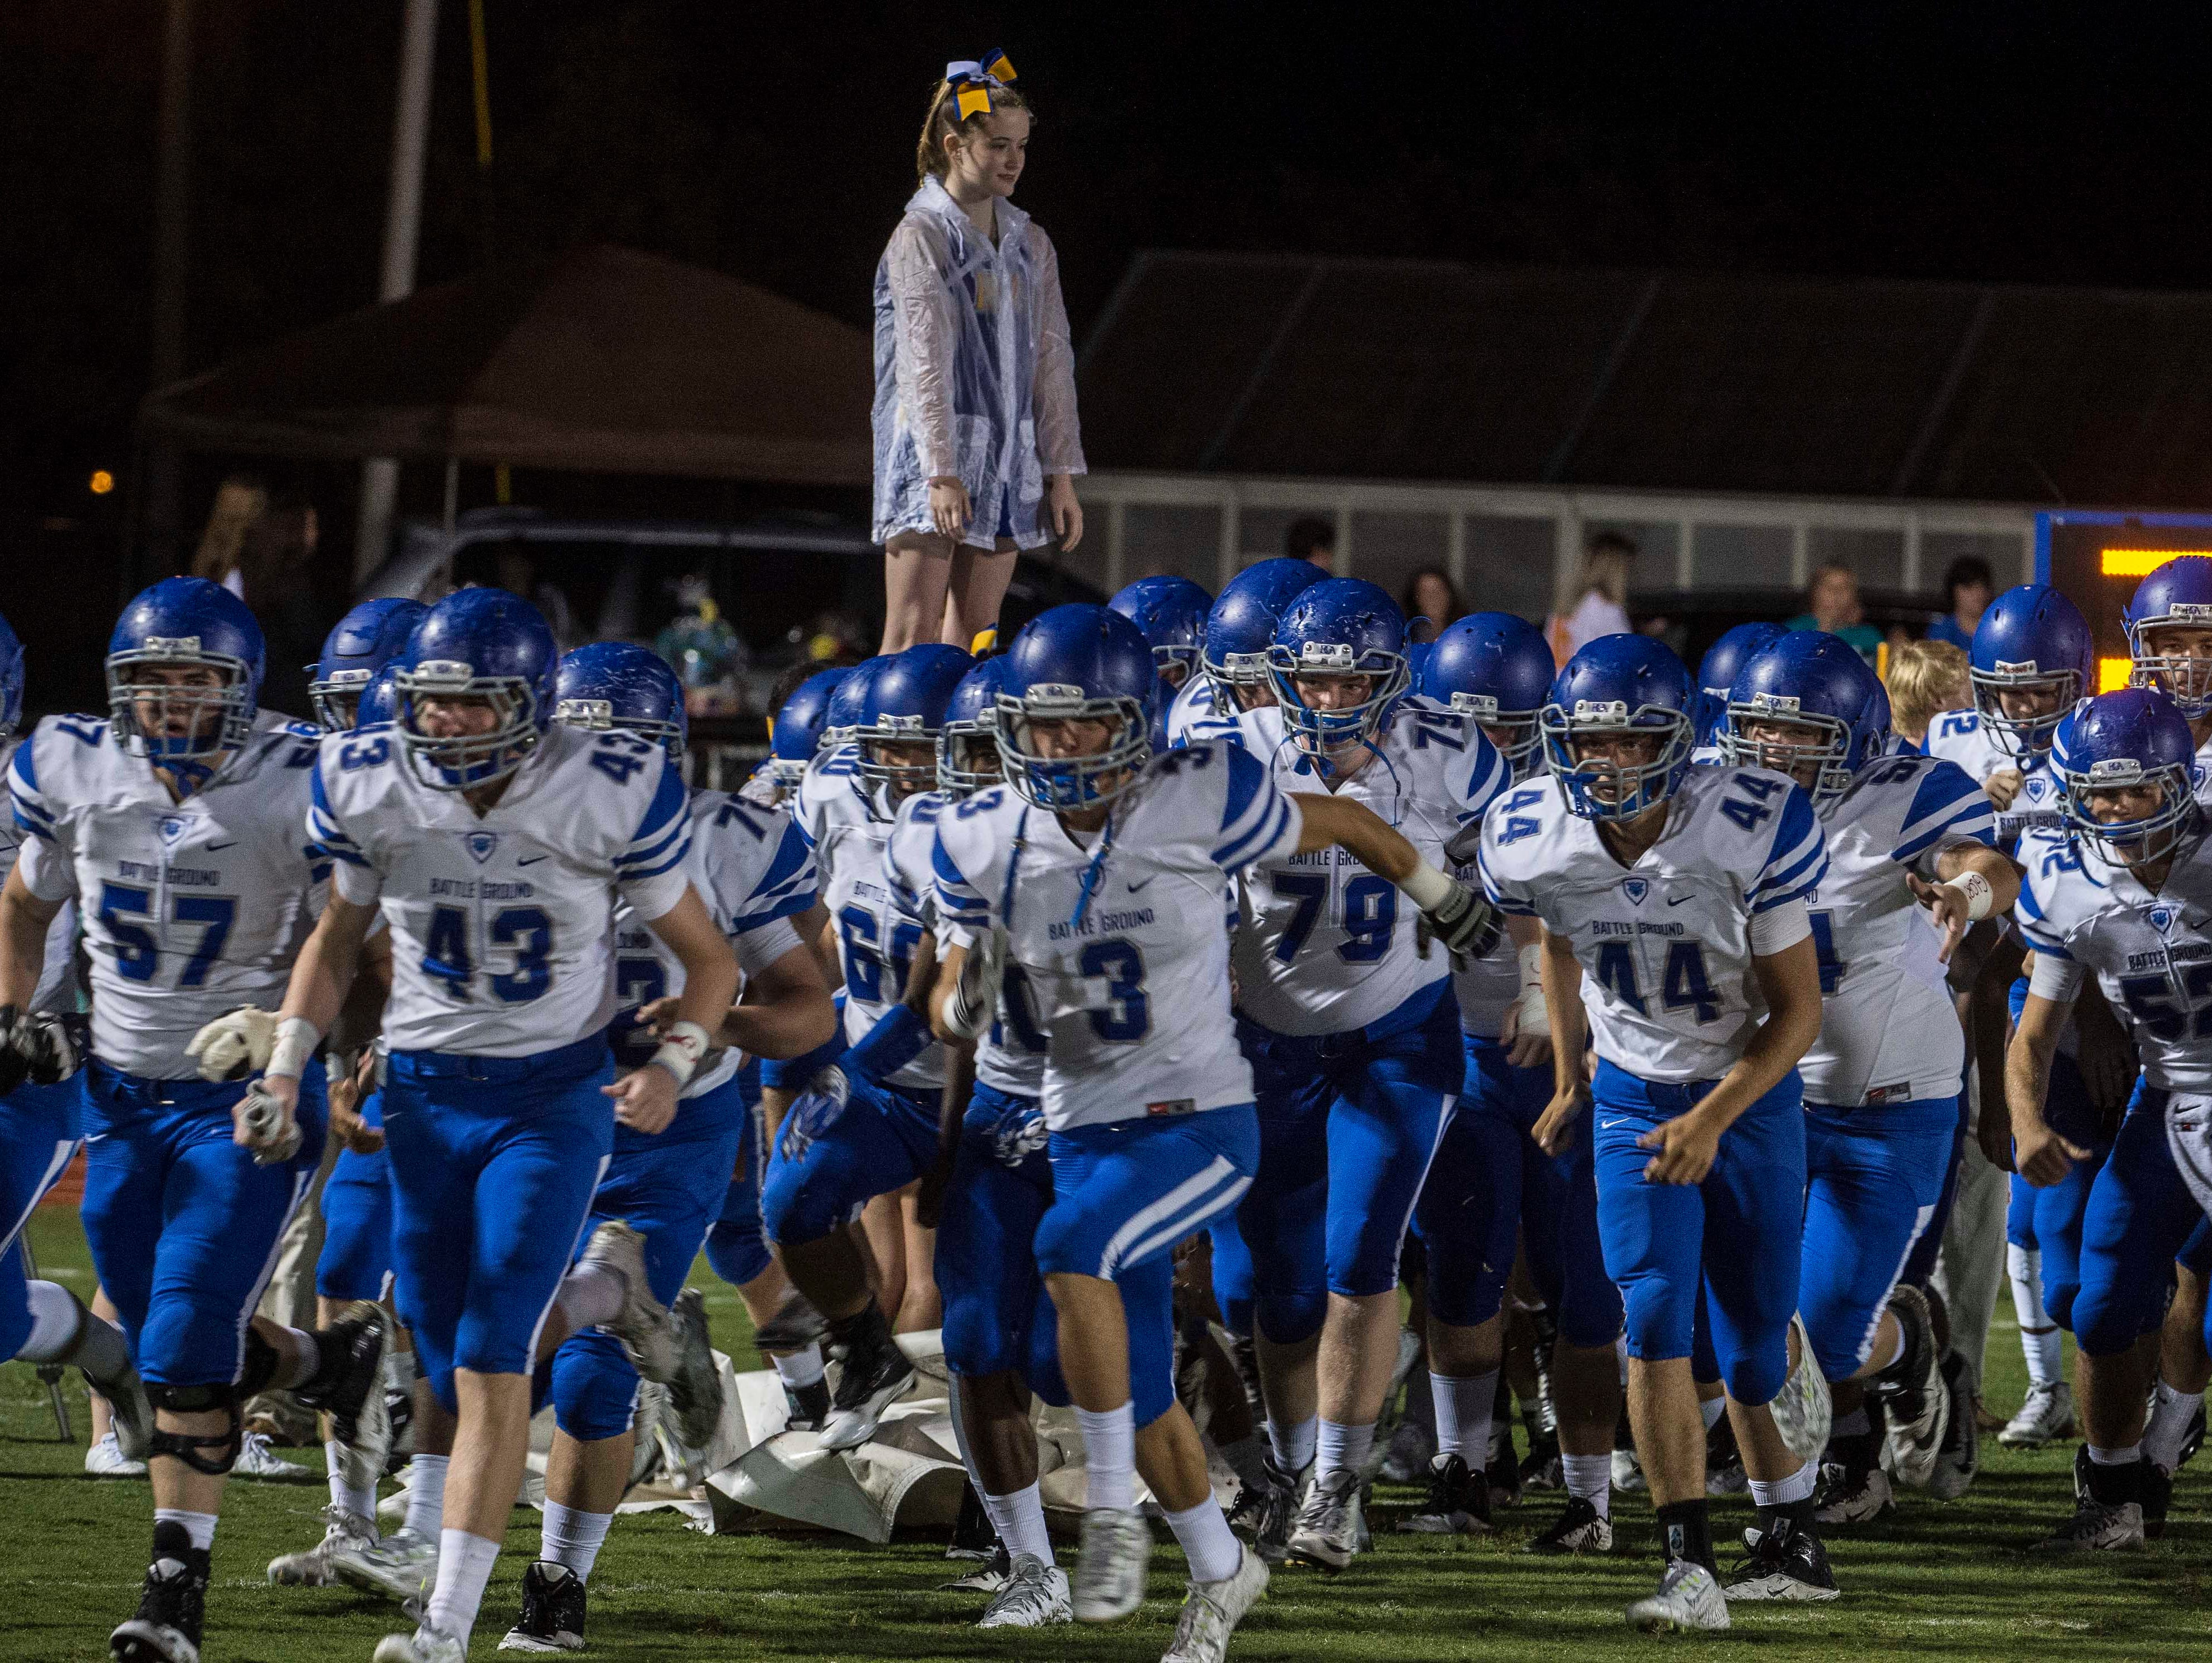 BGA take the field with their game at Page High School on Saturday Sept. 26, 2015, in Franklin in Tenn.